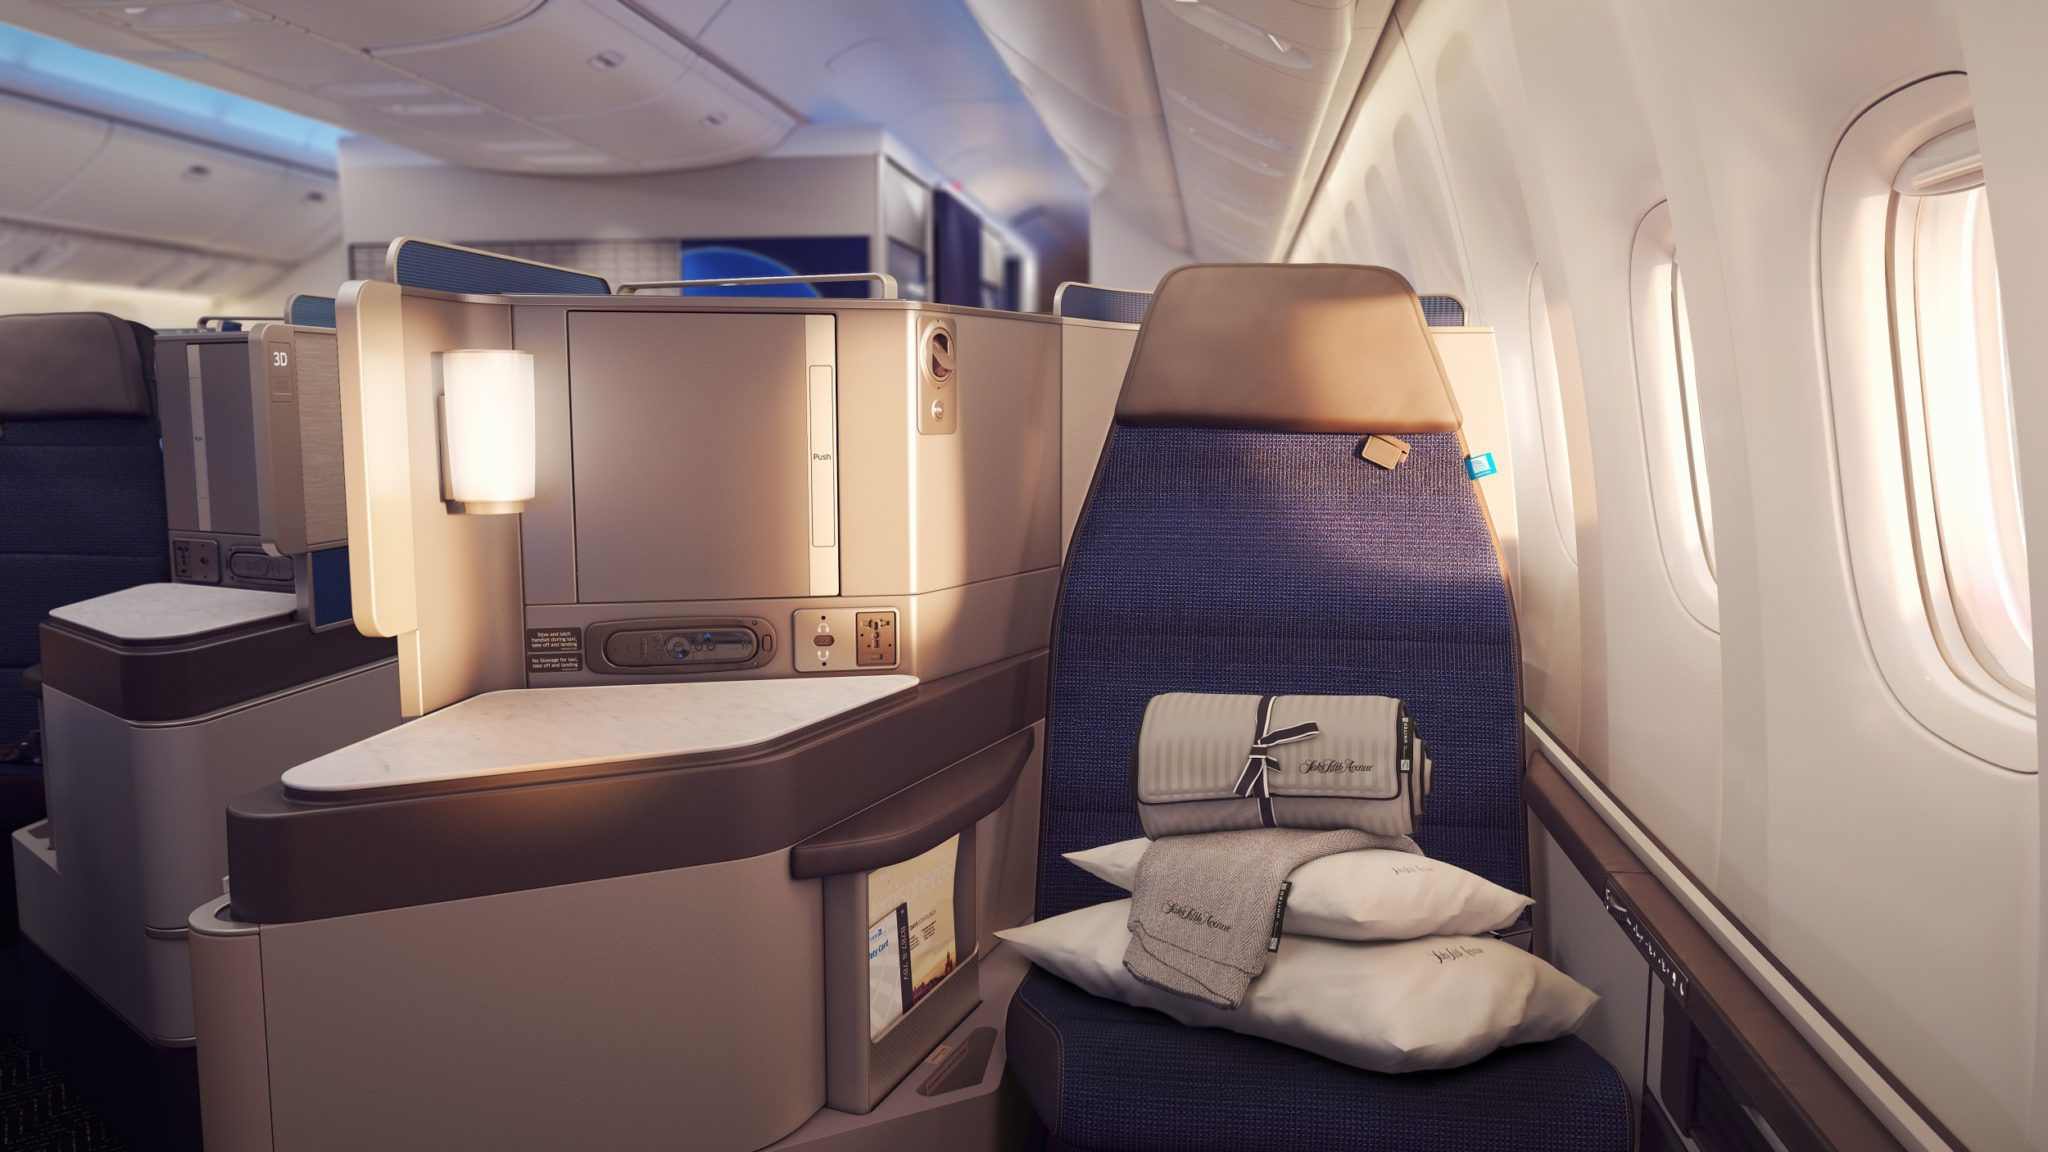 Business class passengers want to arrive well rested on longhaul overnight flights. Image: United